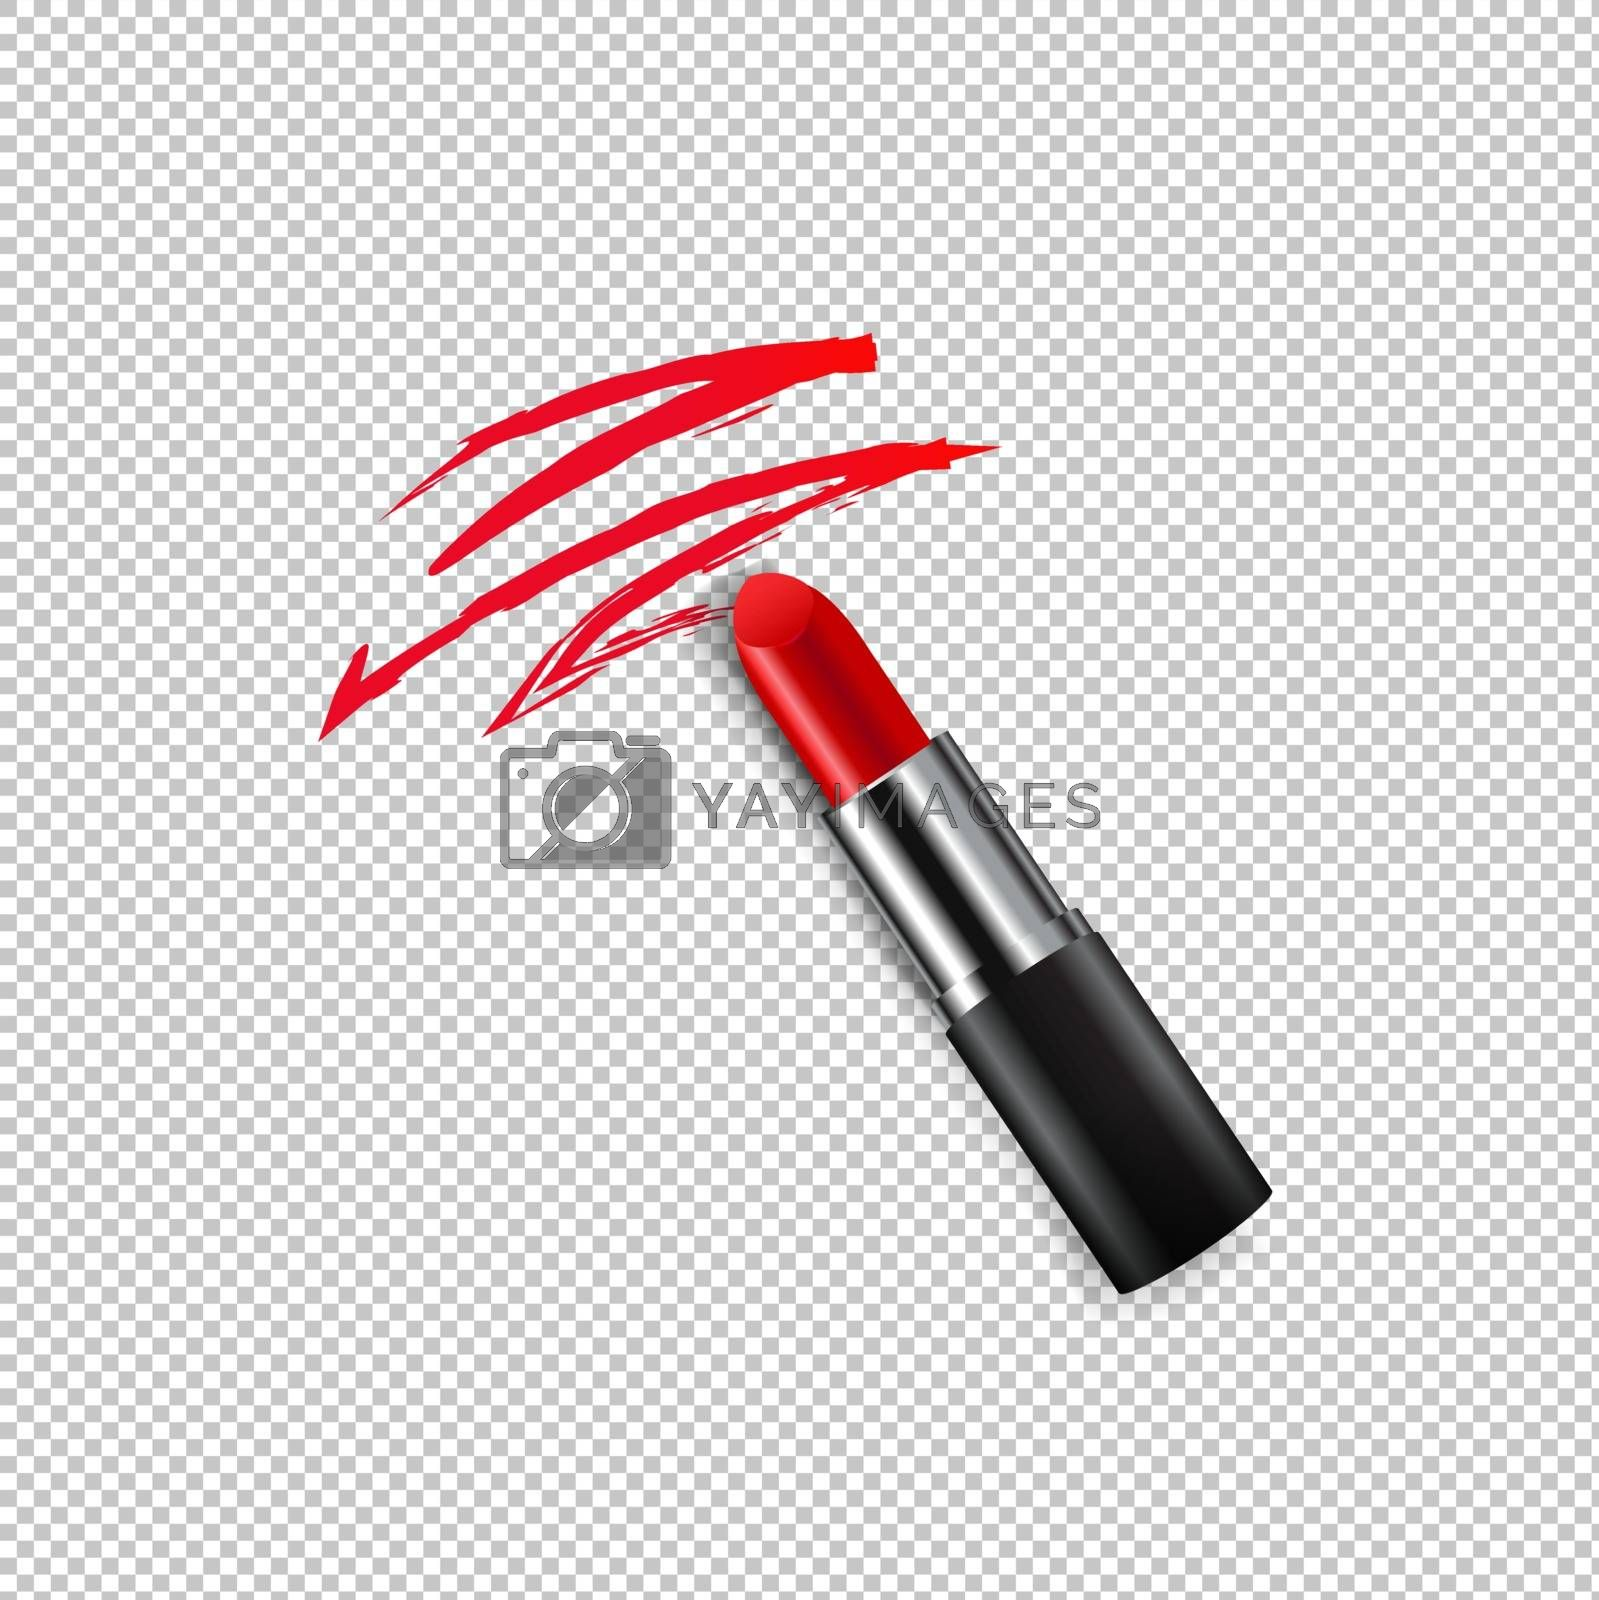 Red Female Lipstick Transparent background by adamson